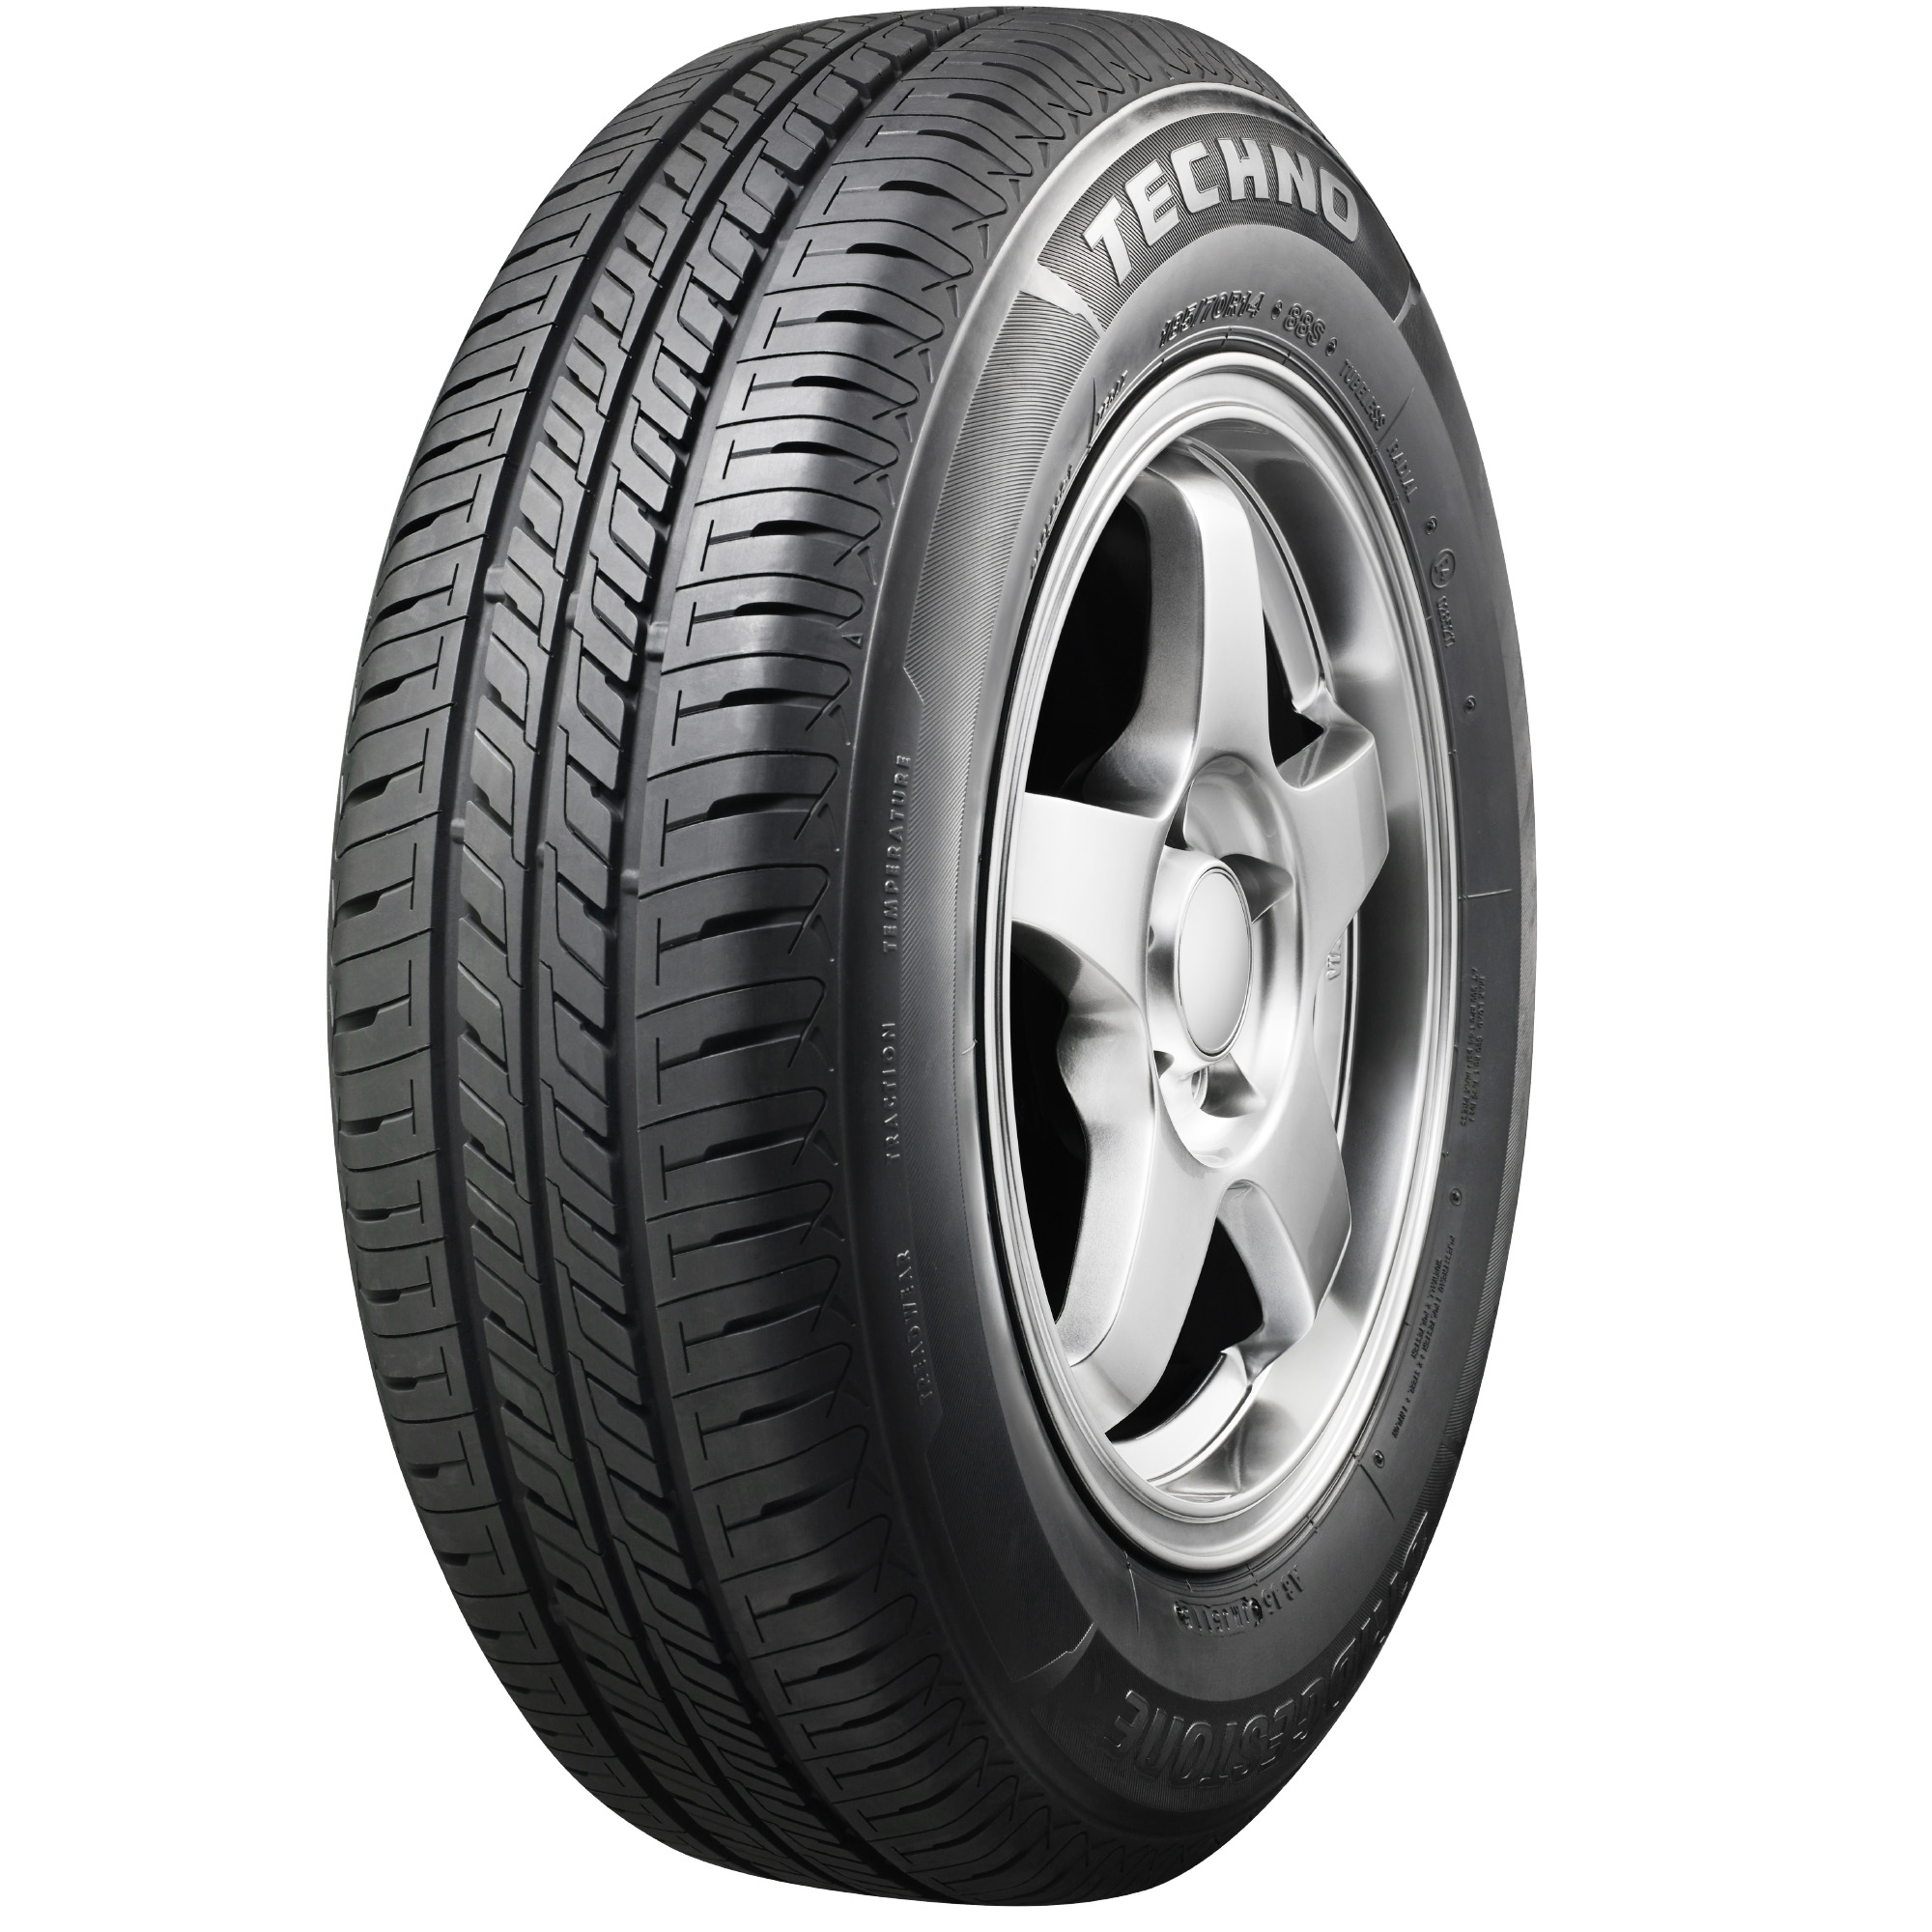 Bridgestone Techno-10